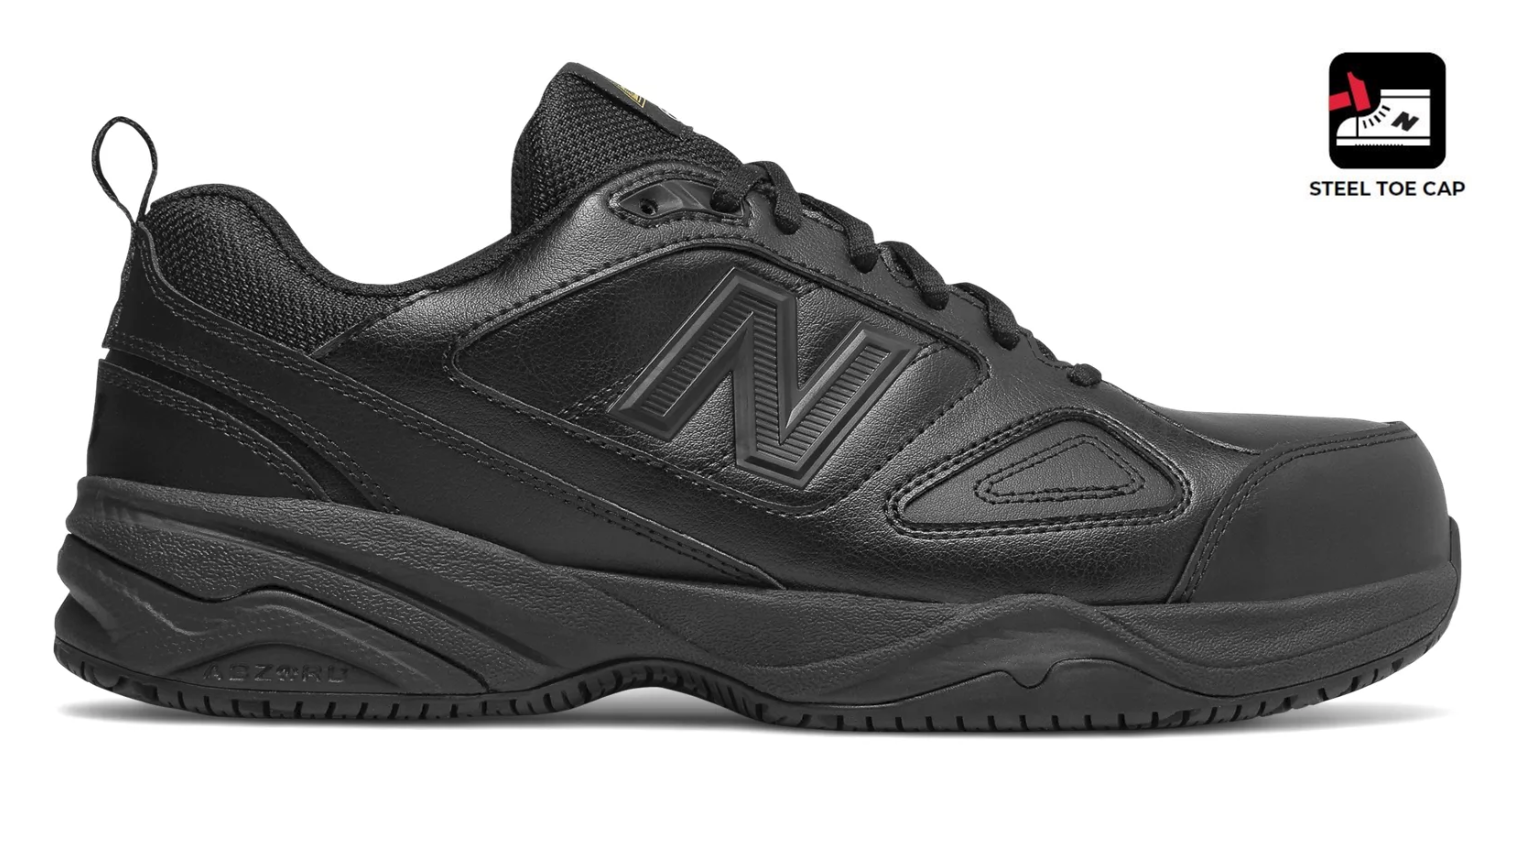 3b01cc168003e New Balance Steel Toe Mens Shoes - NECA Safety Specialists